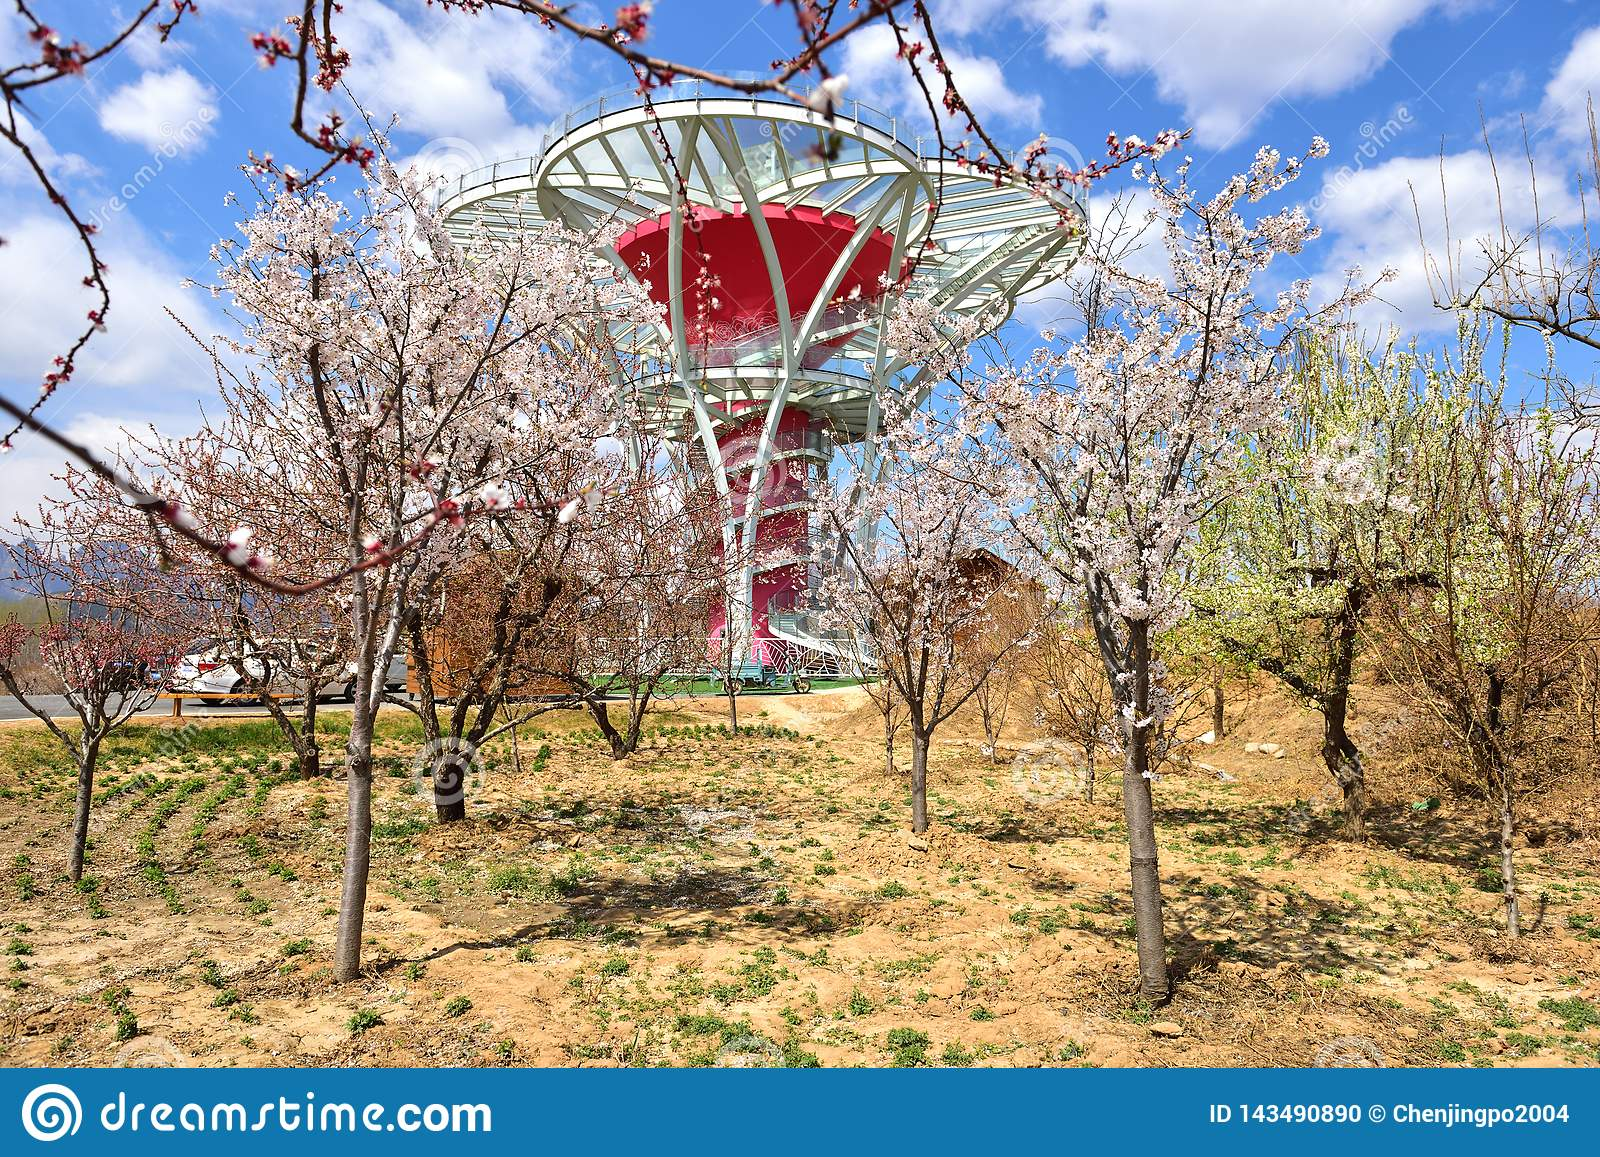 The Mirror-Flower-Terrace-Brief glass viewing tower in the poor mountainous areas of northern China